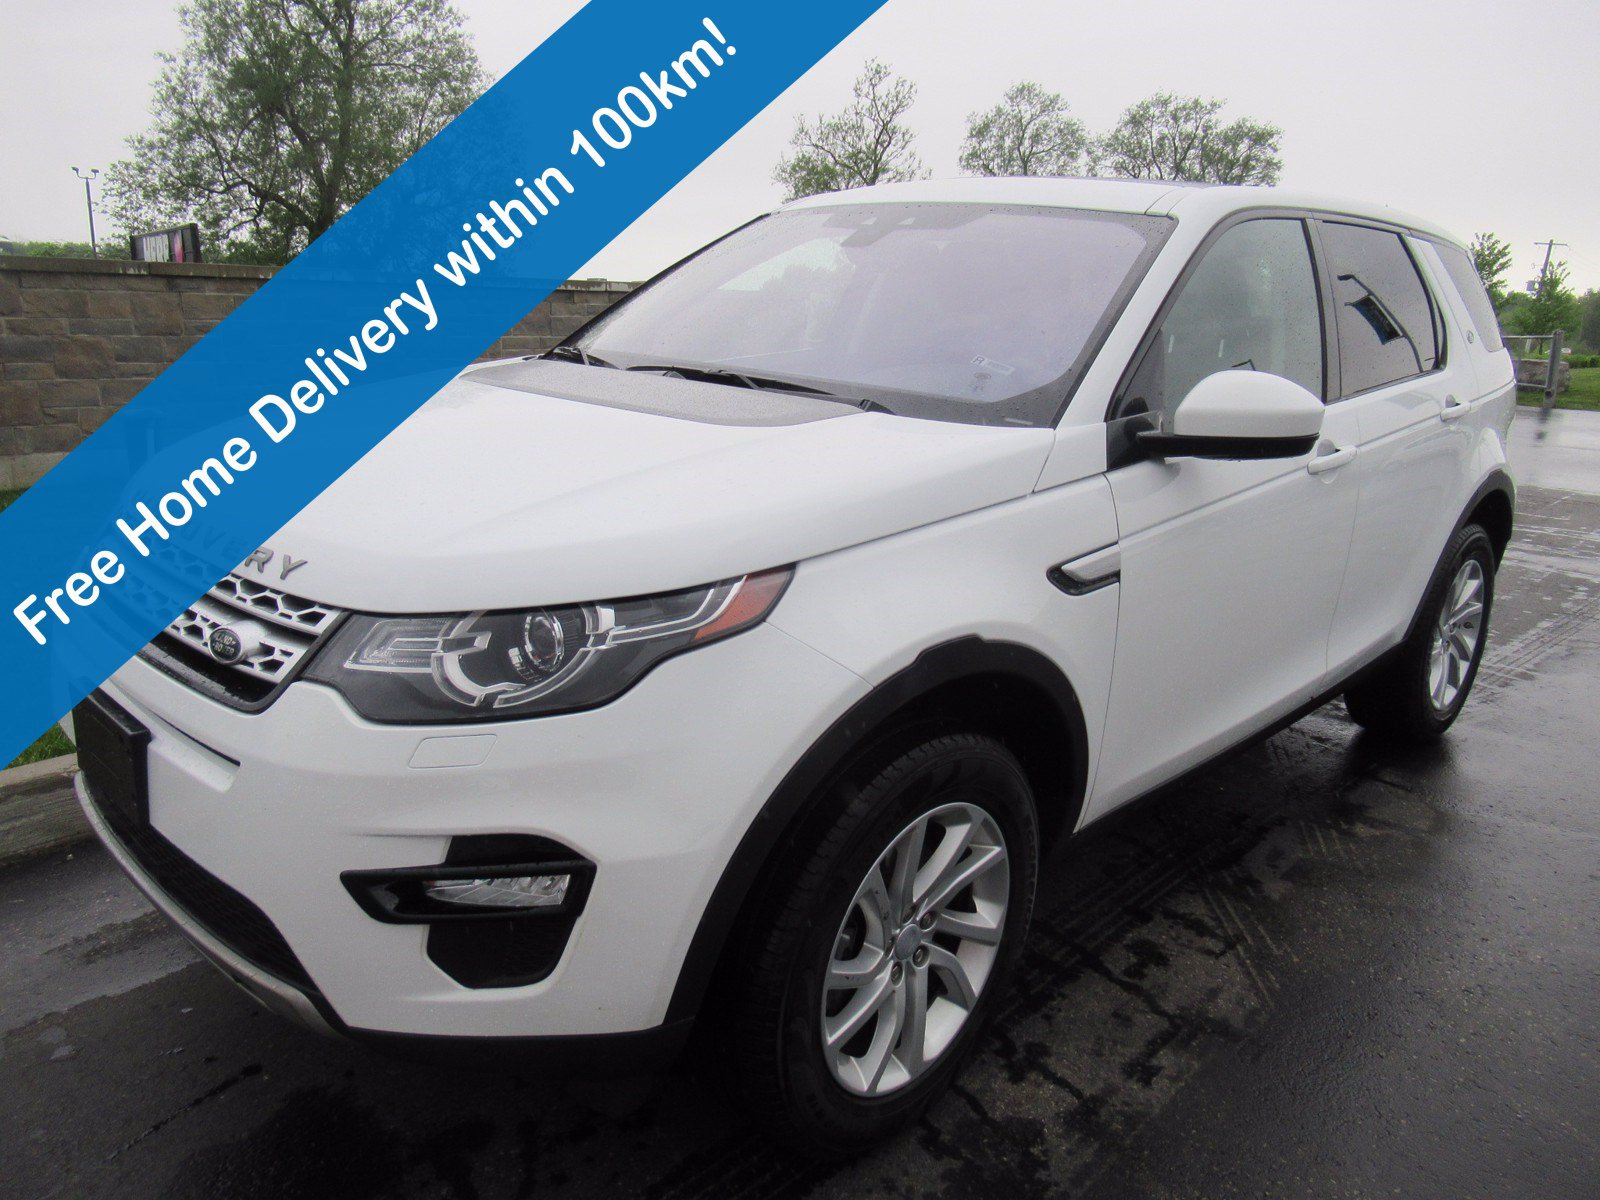 Certified Pre-Owned 2019 Land Rover Discovery Sport HSE AWD, Leather, Glass Roof, Park Sensors, Rear Camera, Bluetooth & More!